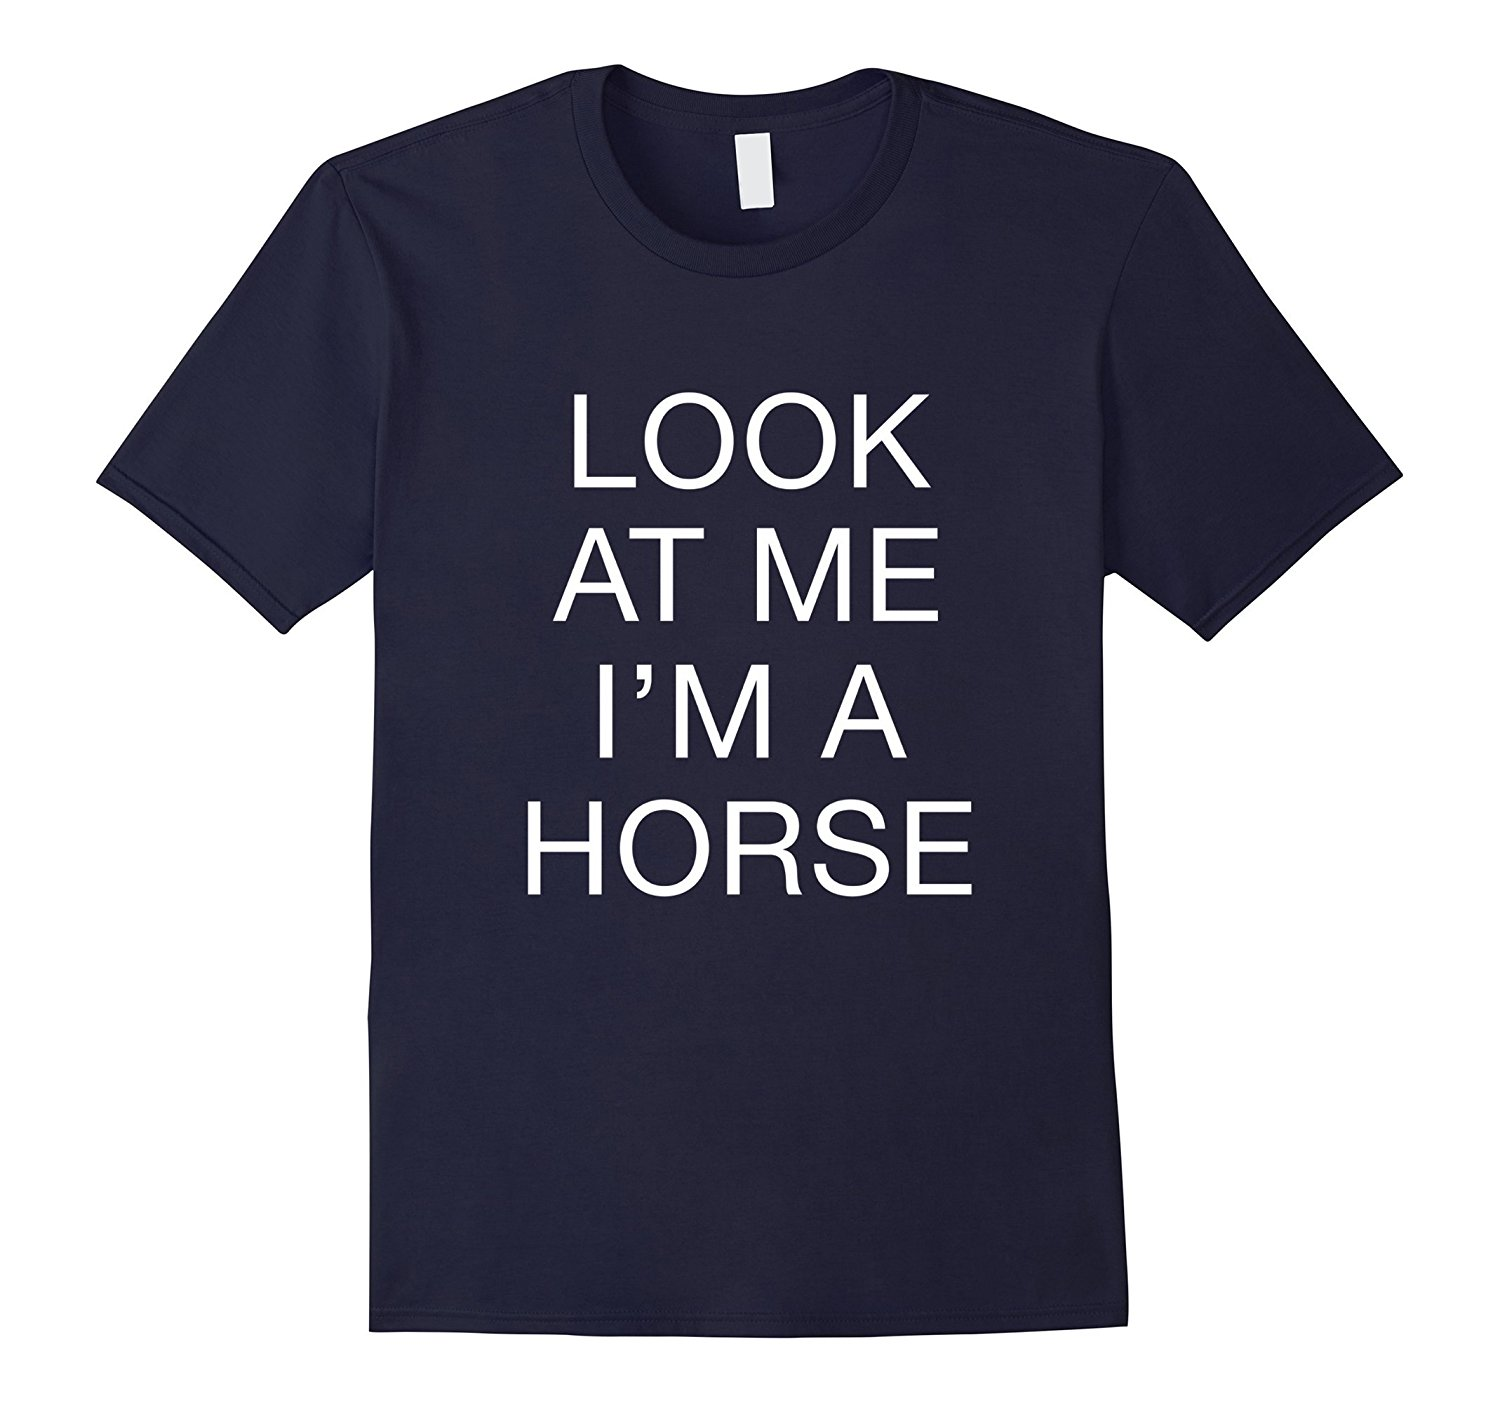 Im A Horse Funny Halloween Costume T-Shirt MenS T-Shirts Summer Style Fashion Swag Men T Shirtss Brand Clothes Summer 2018